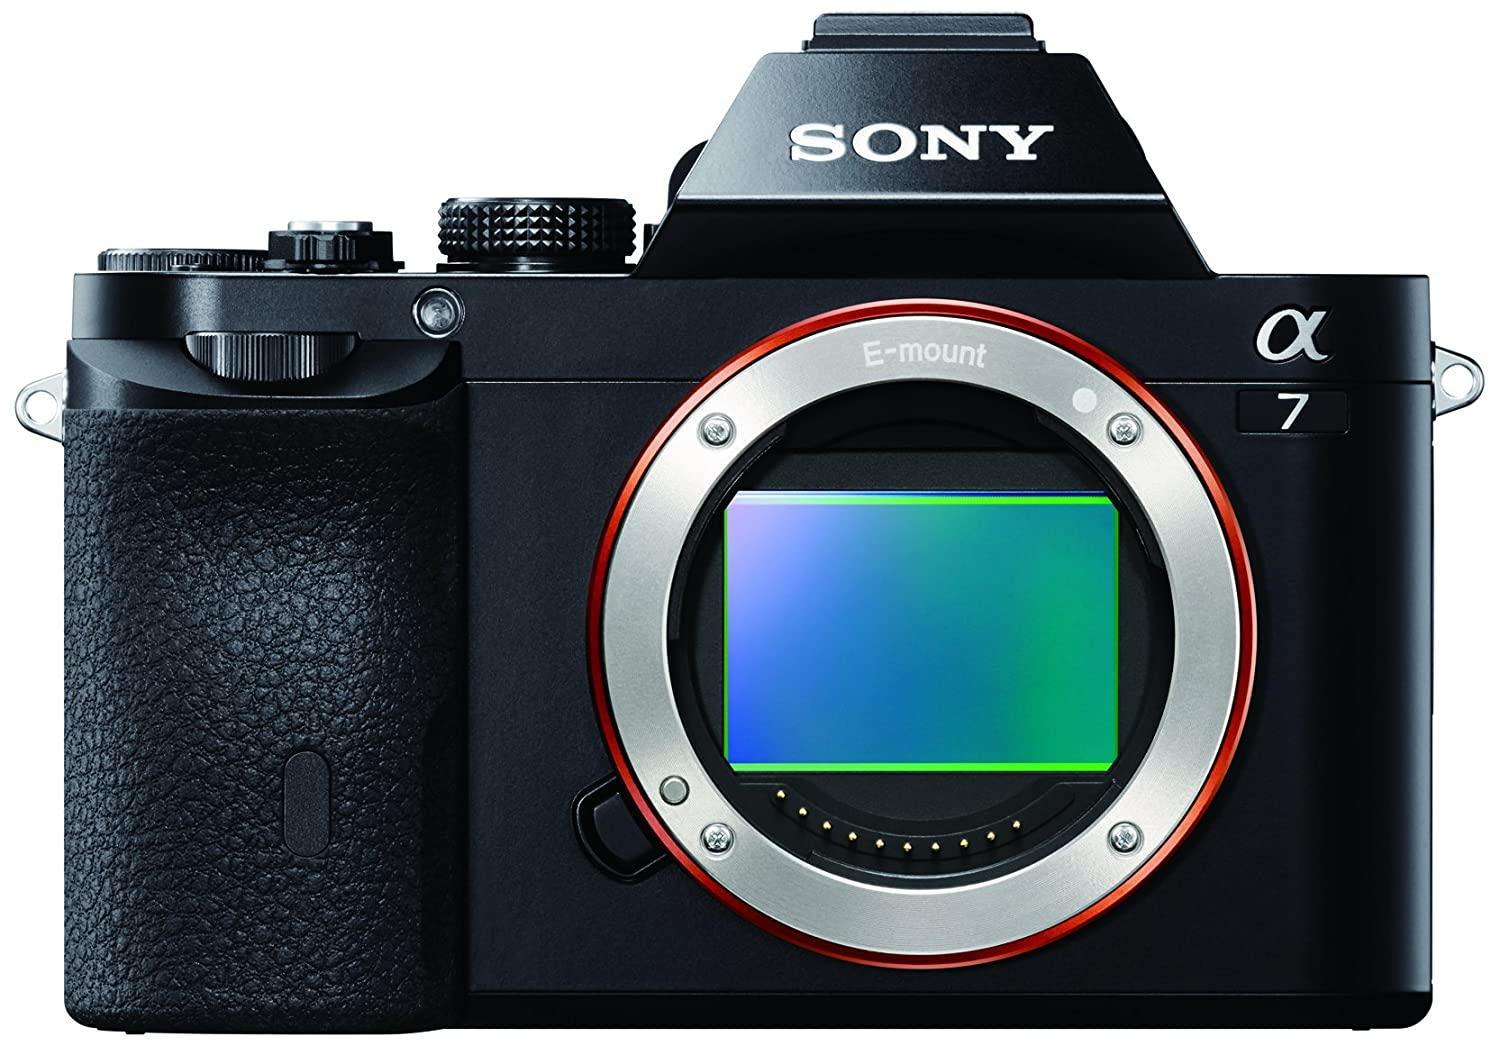 Sony alpha 7 e mount vollformat digitalkamera ilce 7 3: amazon.de